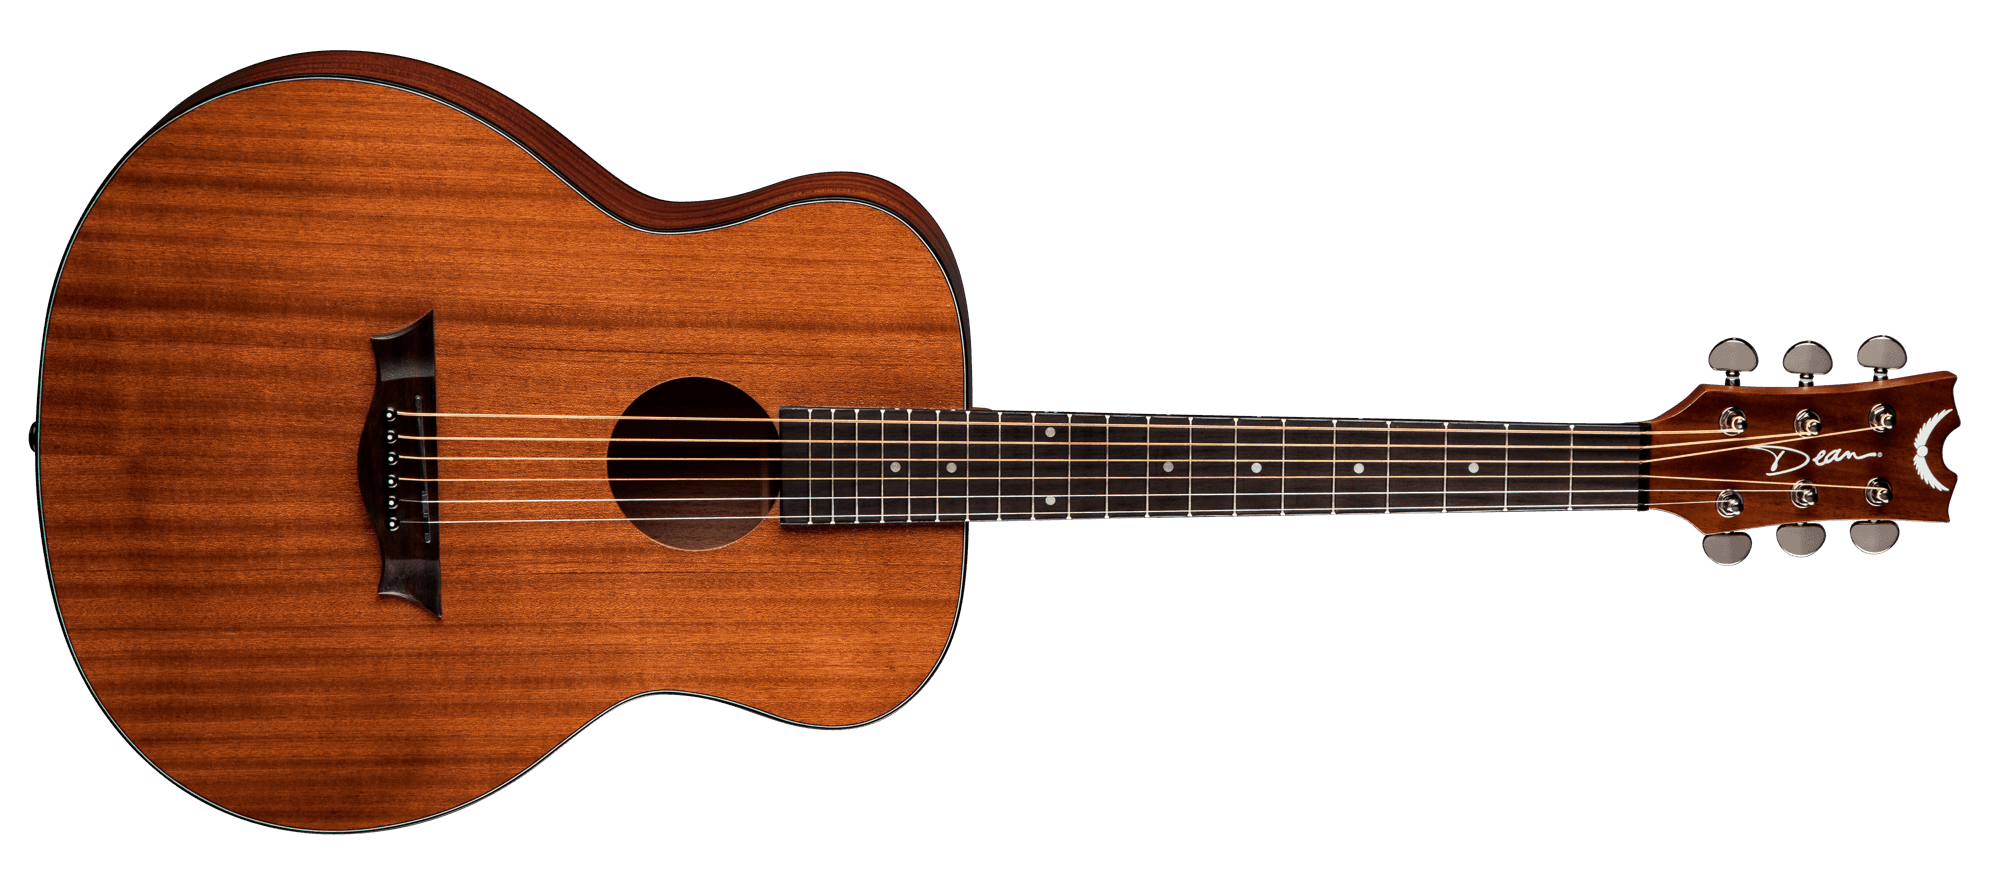 Acoustic Mini and Lesson Package $225 (reg $309) - 1.Dean AXS MINIThe Dean AXS Mini Acoustic Guitar is an affordable steel-string with a full sound and some amazing looking wood. It features a mini-size body made of mahogany with a top that really shows off this tonewood's exquisite grain, all highlighted by 3-ply body binding. The guitar is full-scale with a set mahognay neck and a comfortable